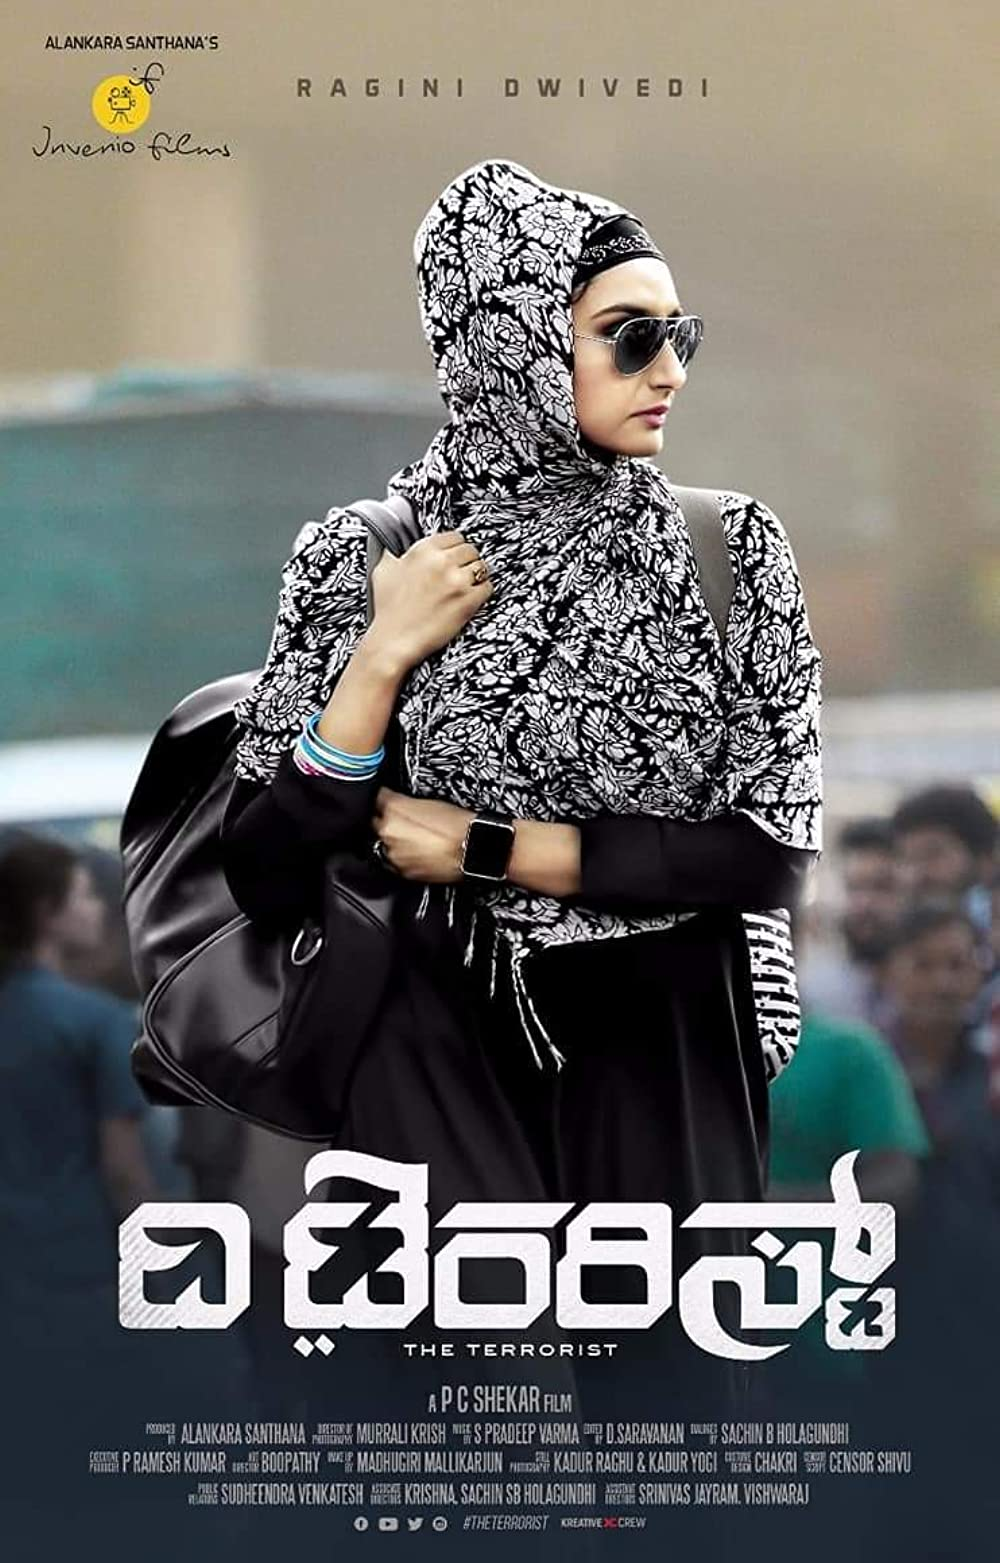 Download The Terrorist 2020 Hindi ORG Dual Audio 720p UNCUT HDRip 1.1GB